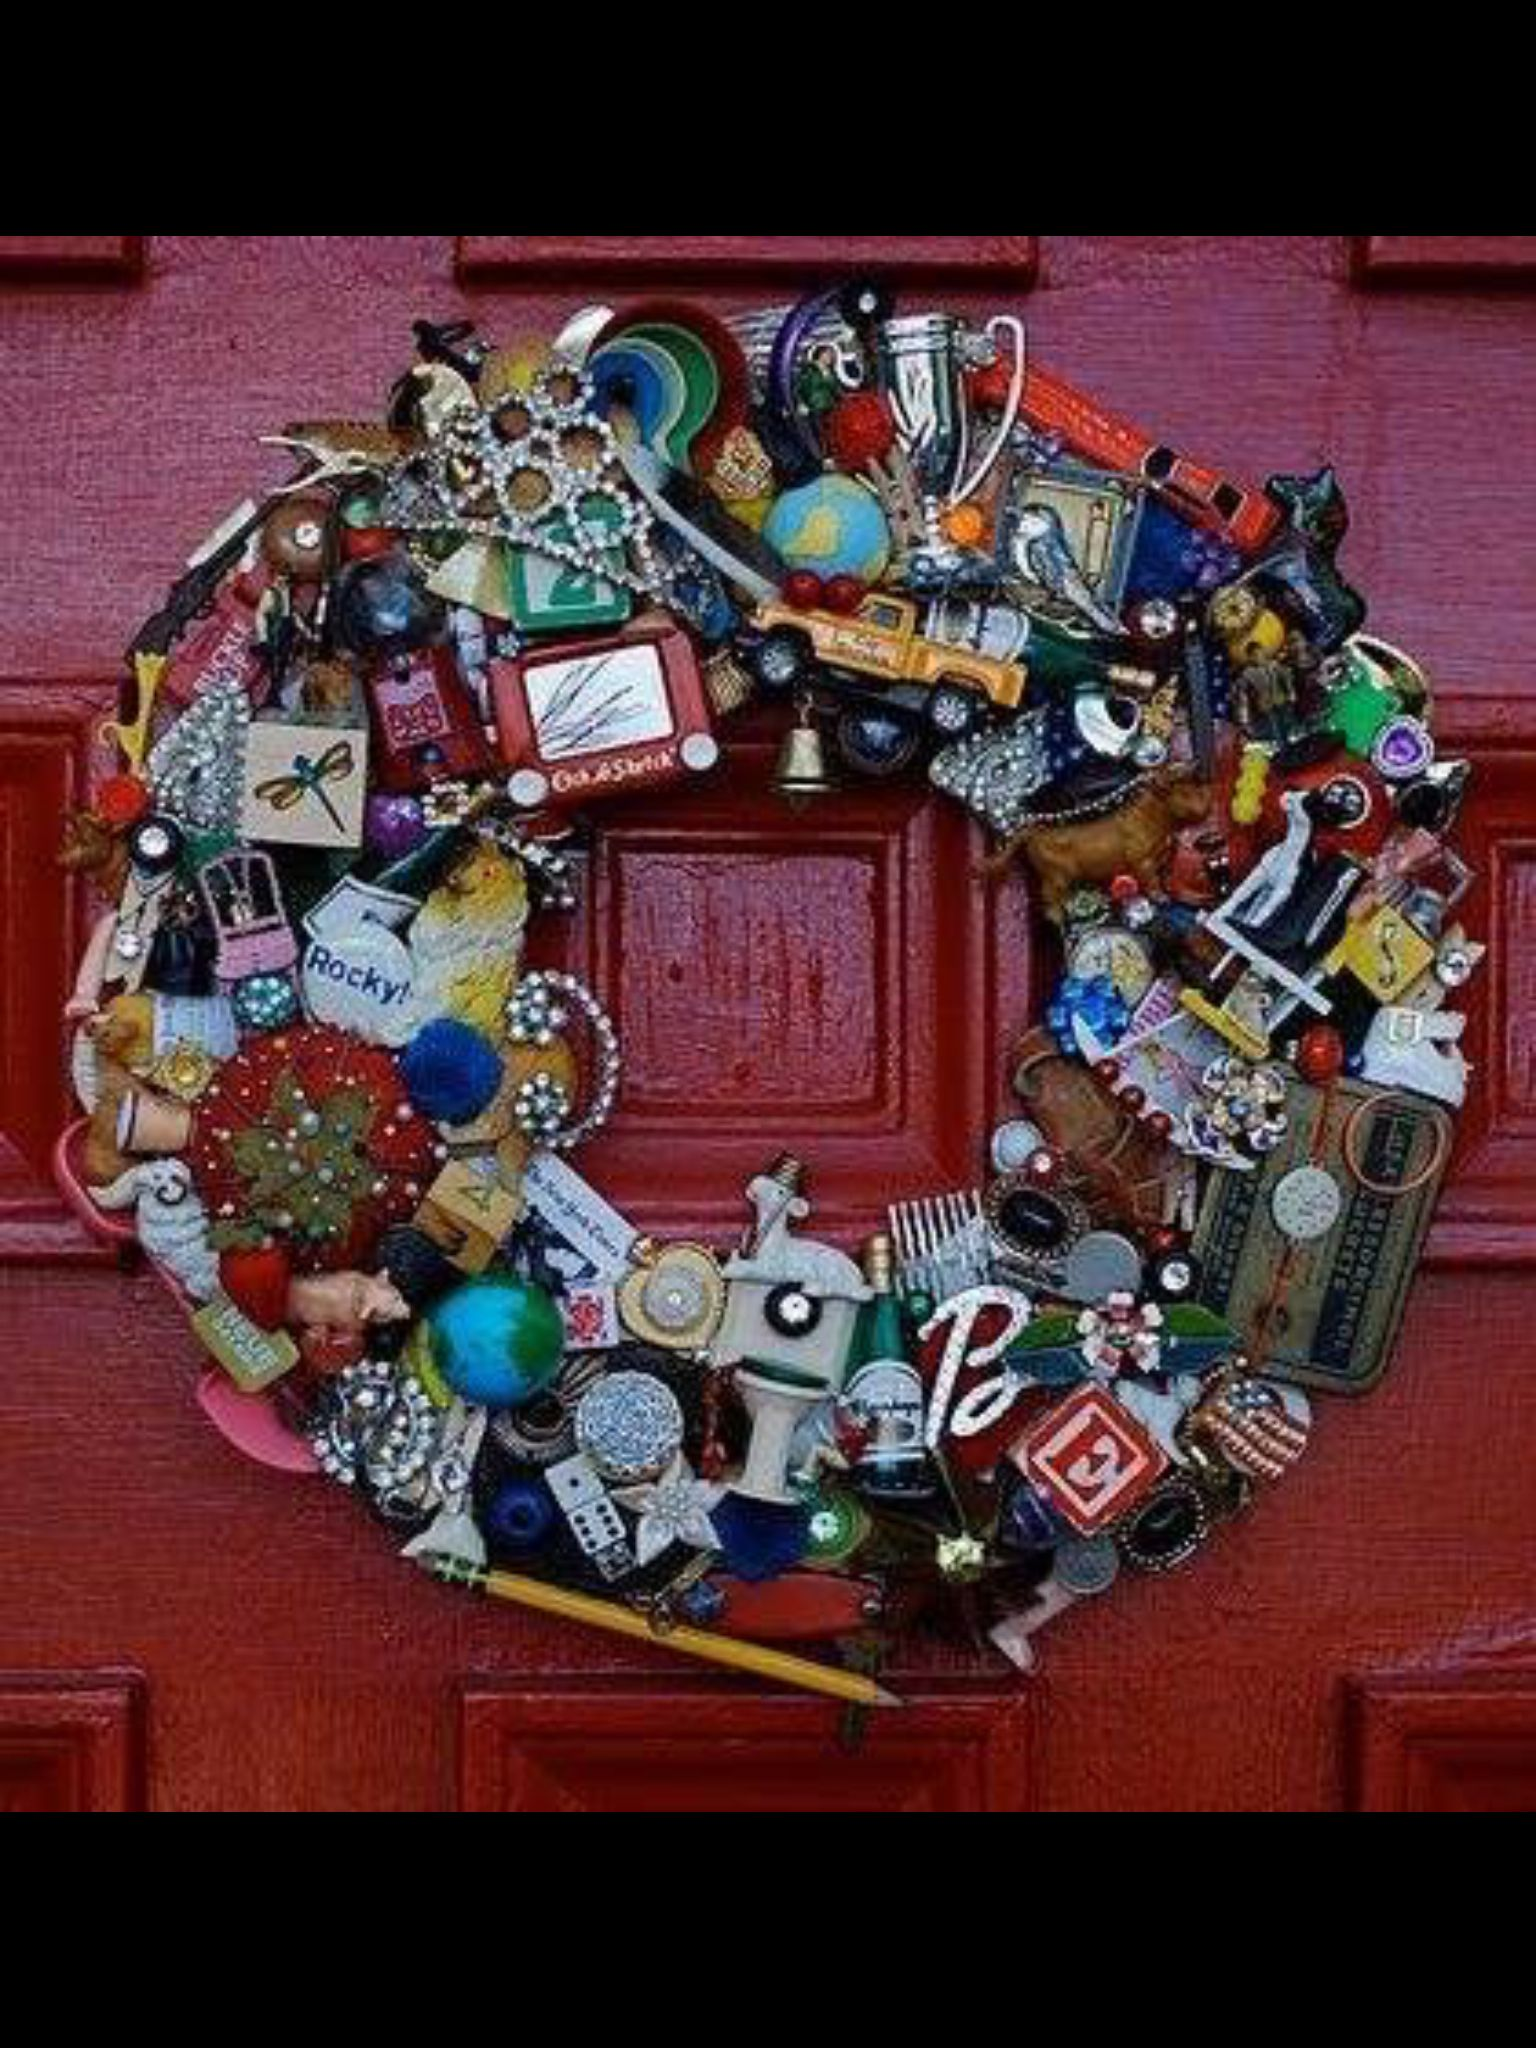 Wreath Made Of Old Toys And Items From A Junk Drawer Very